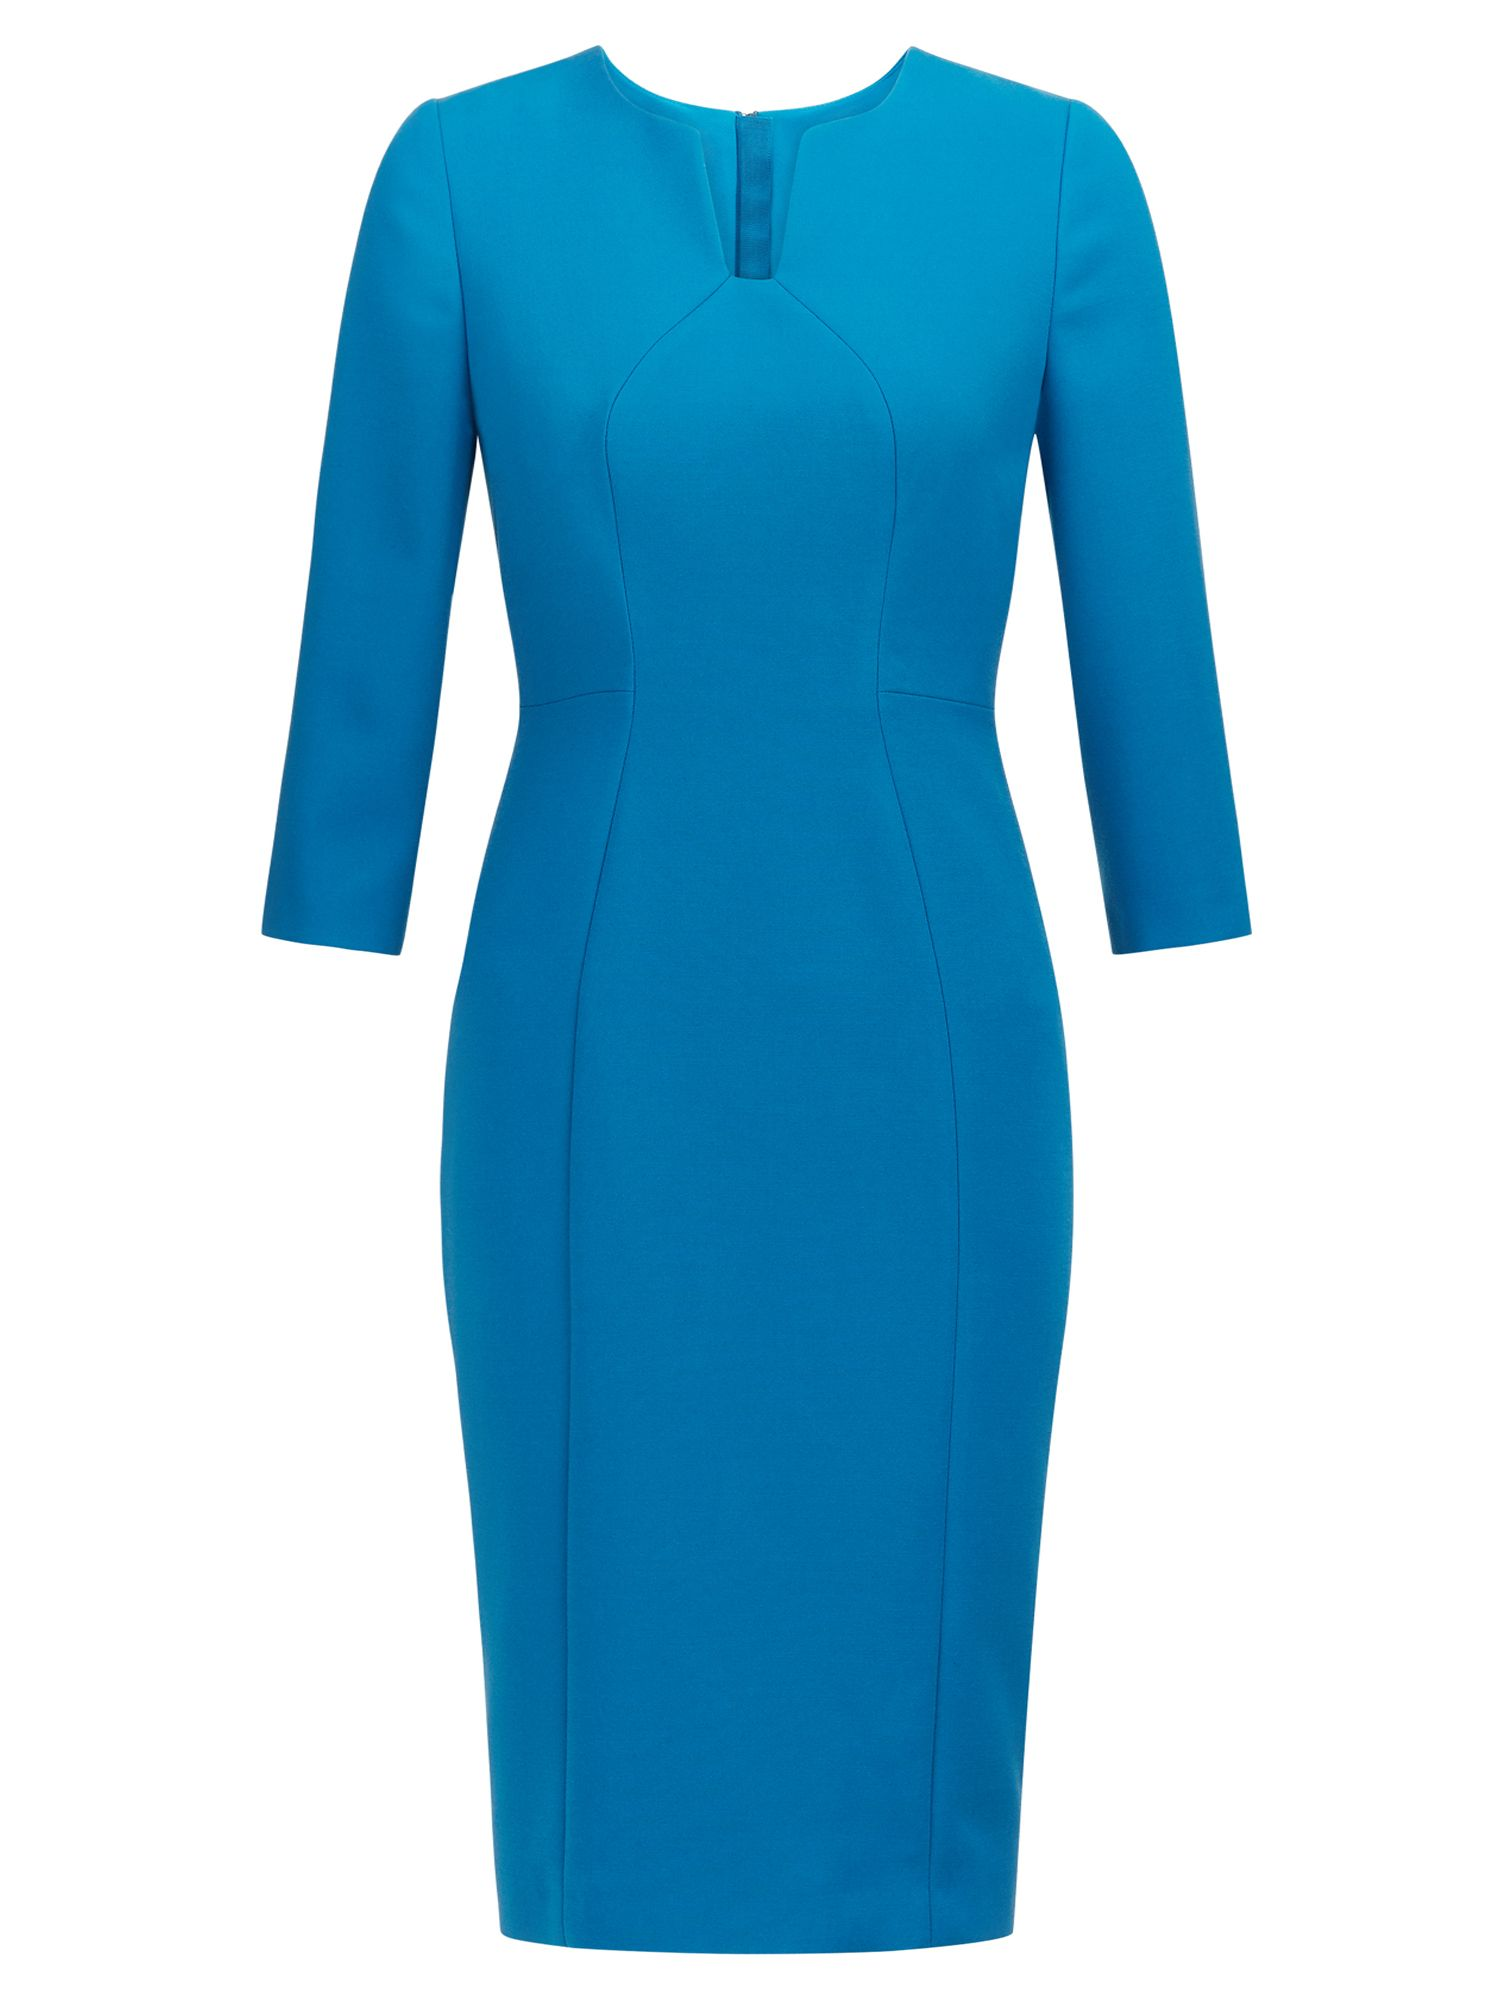 Hobbs Clementine Dress, Blue